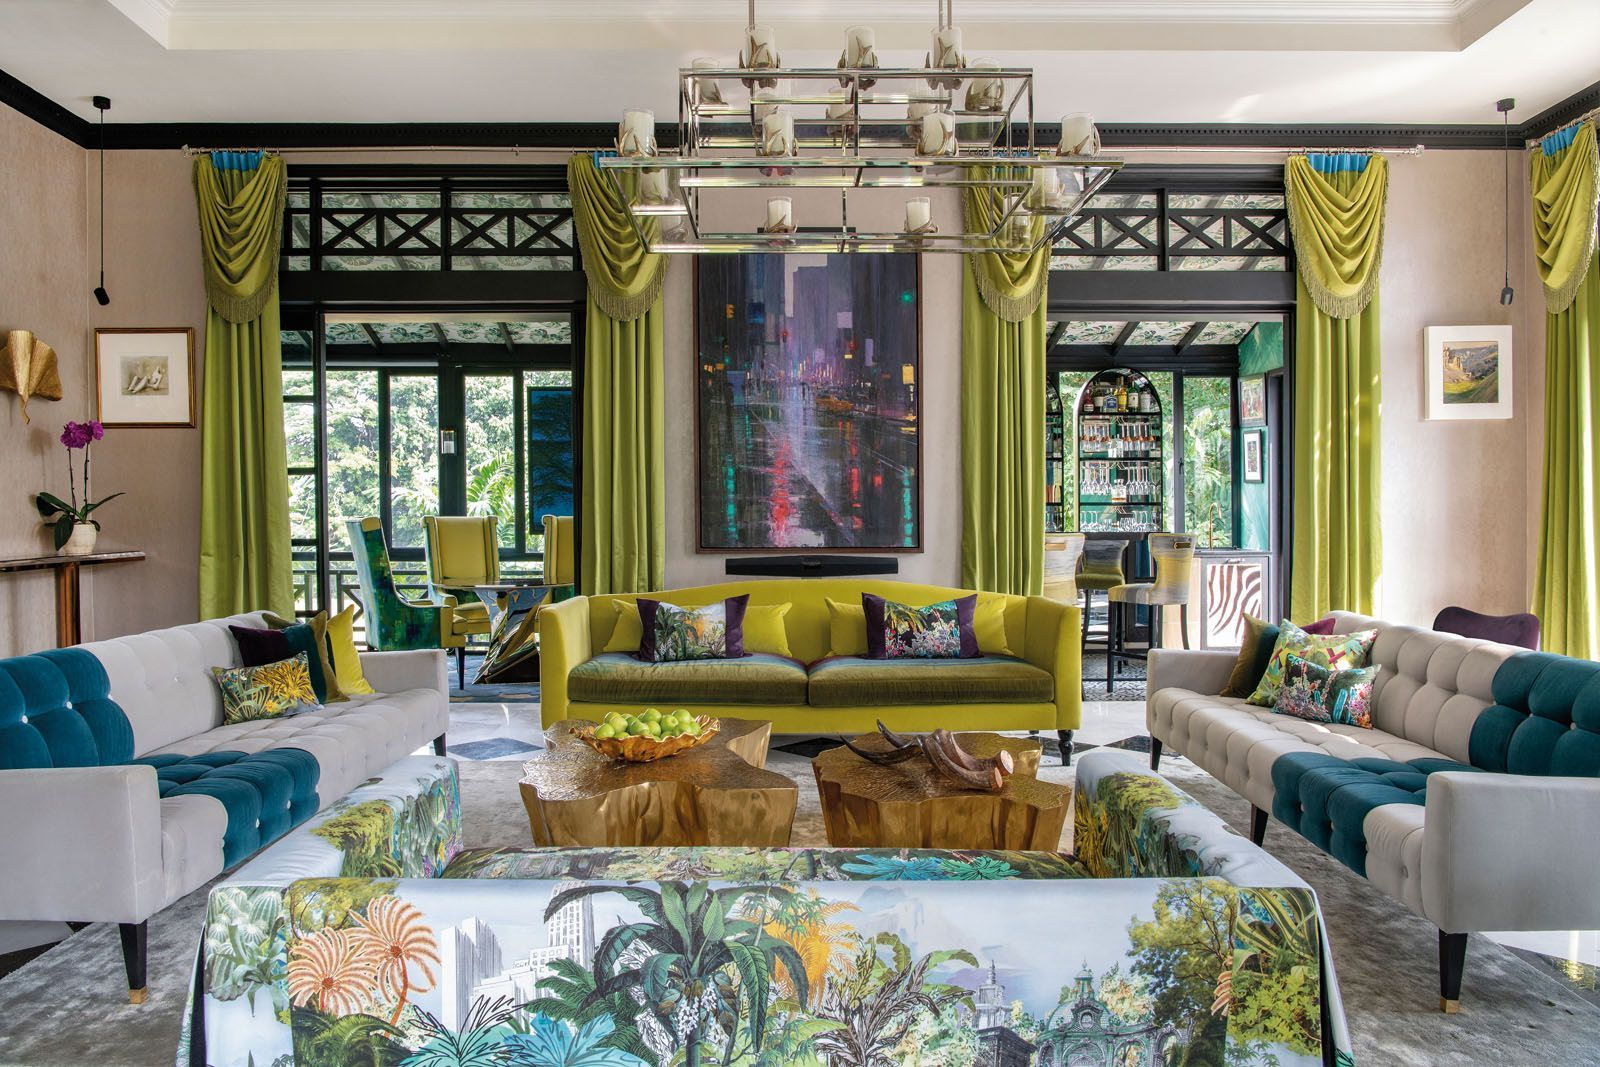 Watch: The Interior Designer Who Fills Her Home With Vibrant Colours in 'Remarkable Living', a Singapore Tatler x CNA Luxury TV Series